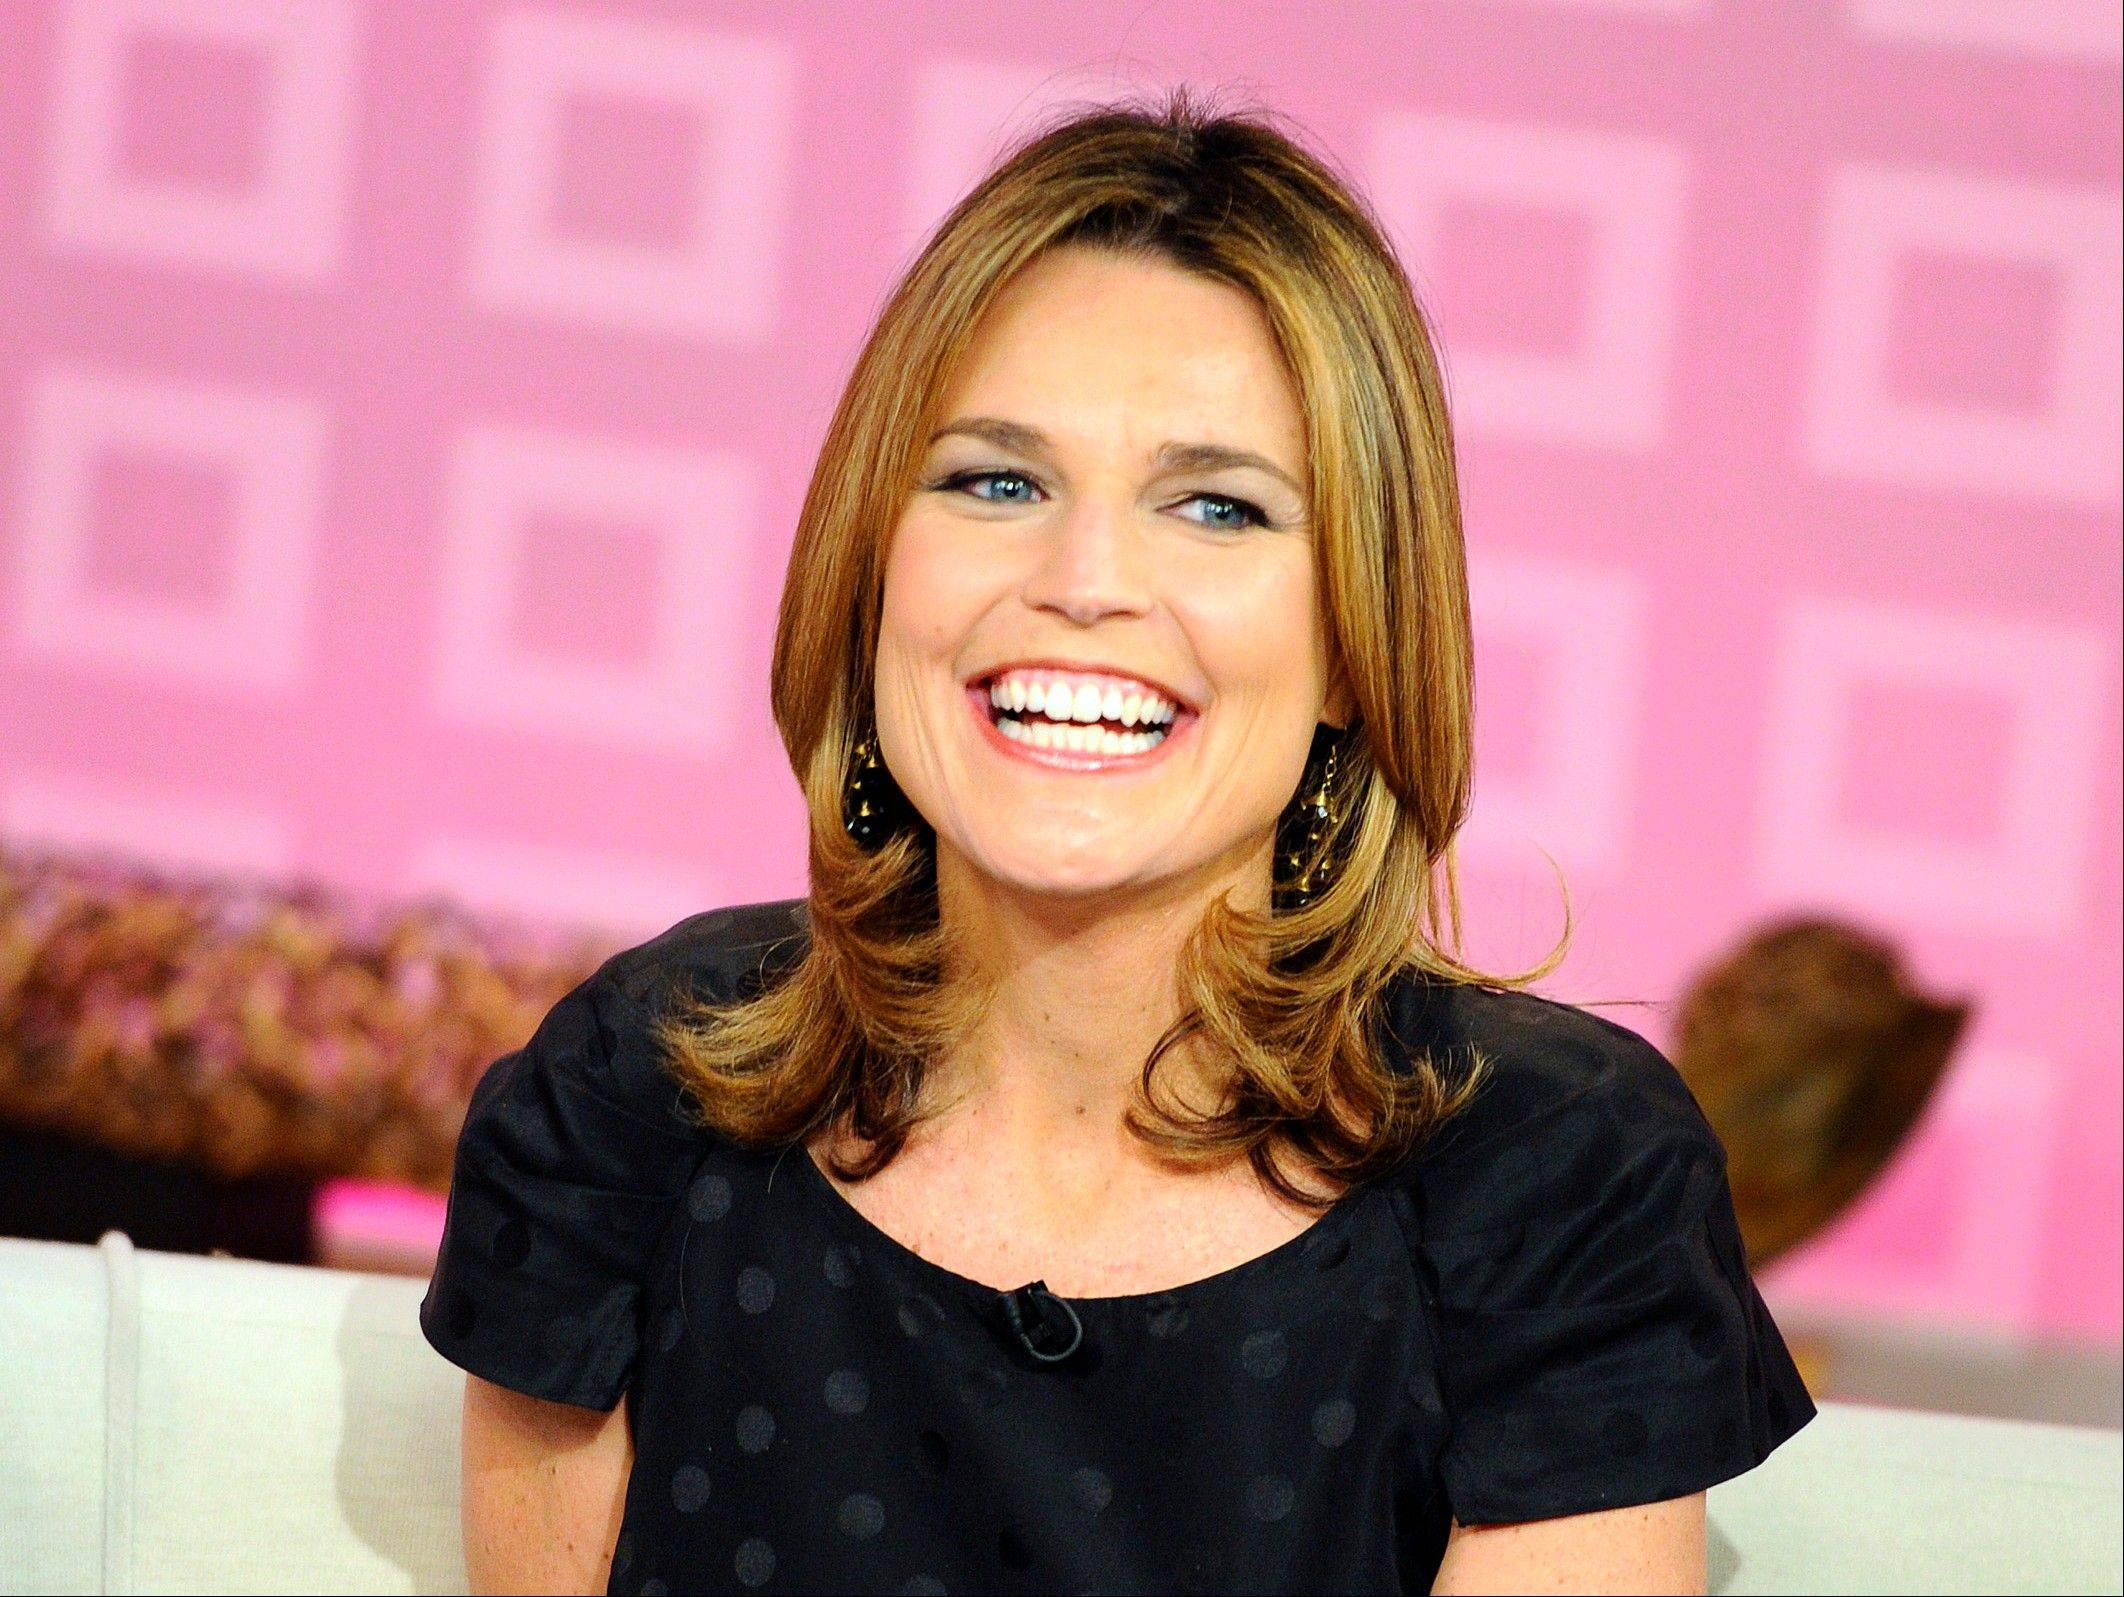 """Today"" show co-host Savannah Guthrie appears on the set during a broadcast, in New York. Nielsen says NBC's ""Today"" was beaten last week by ABC archrival ""Good Morning America"" by 357,000 viewers"